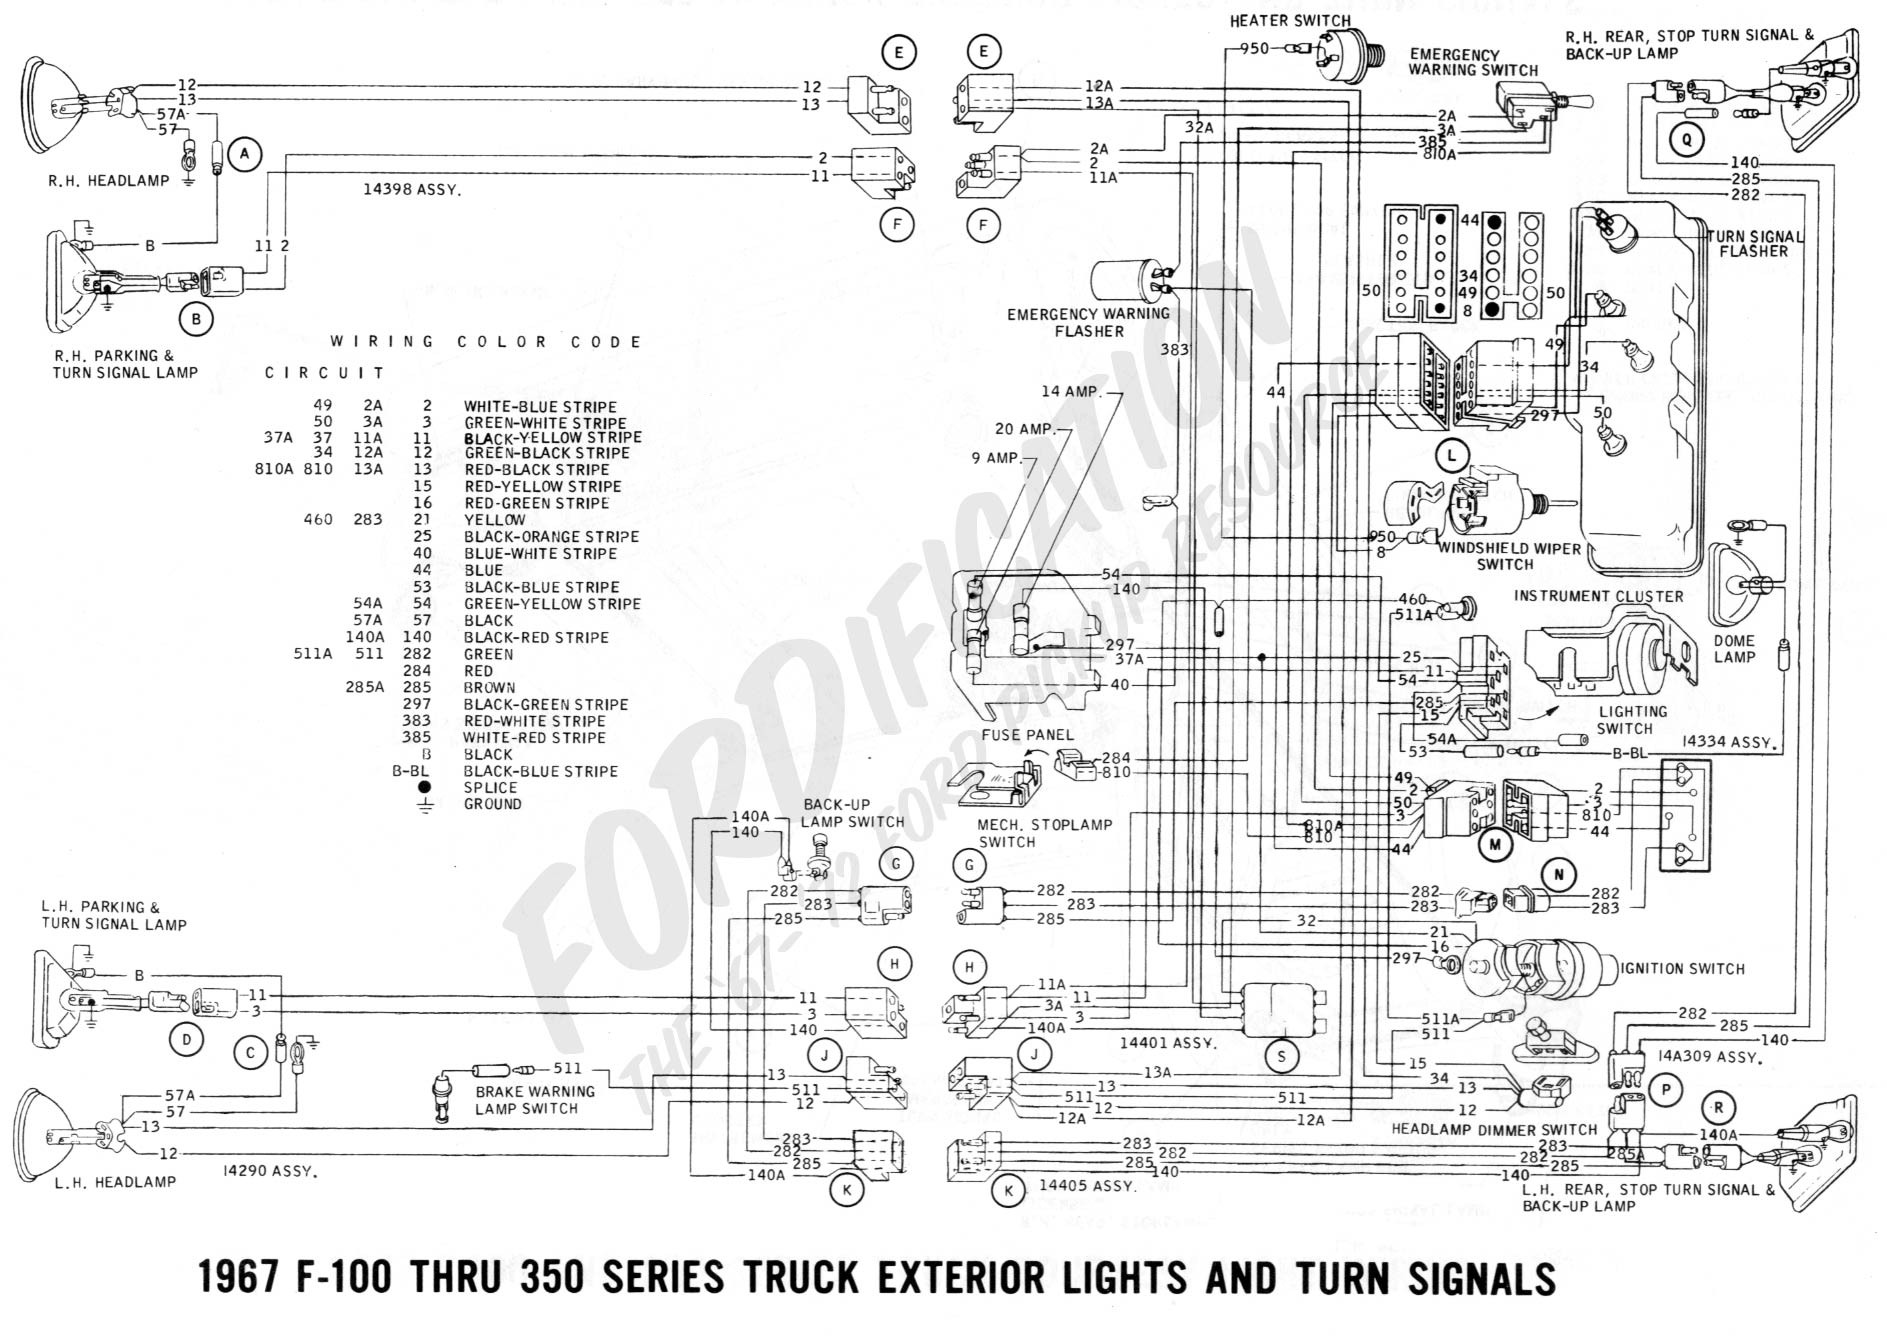 1963 ford galaxie fuse box location wiring diagram68 thunderbird ford vacuum routing diagrams free download wiringwiring diagram for 1967 ford fairlane wiring diagram